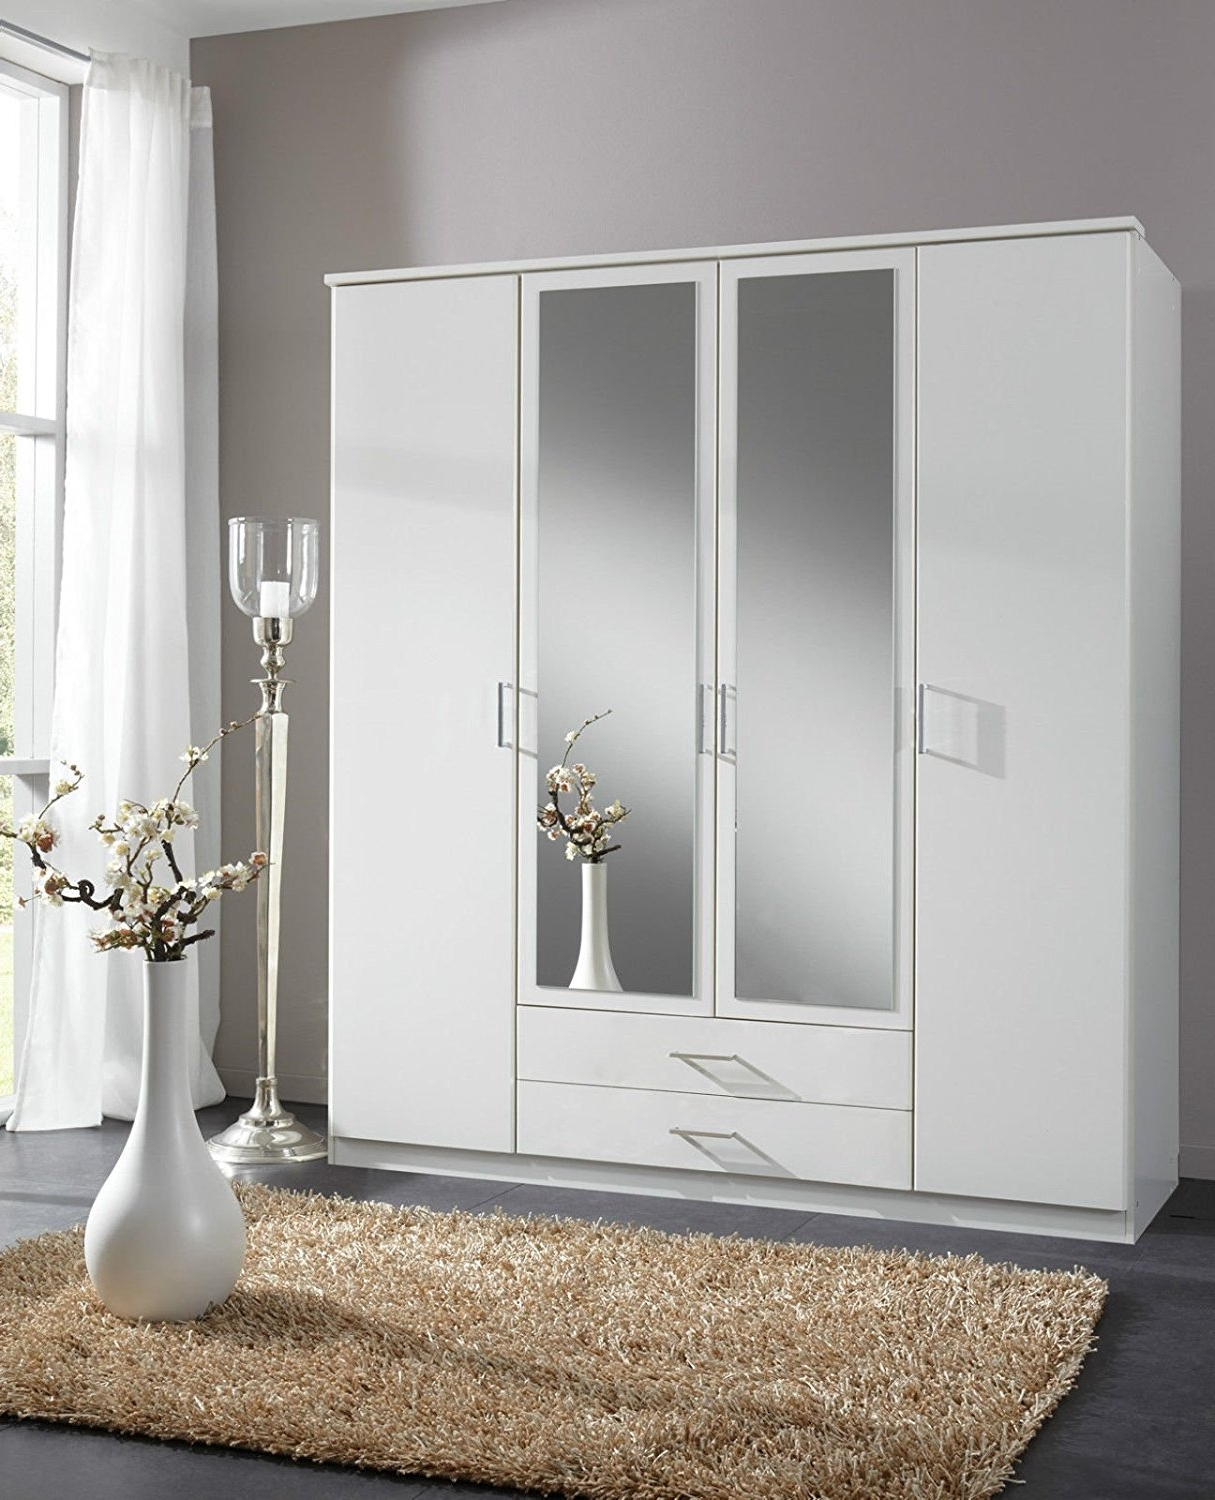 Wardrobes With 4 Doors Intended For 2018 German Berlin White 4 Door Mirror Door Wardrobe: Amazon.co (View 11 of 15)